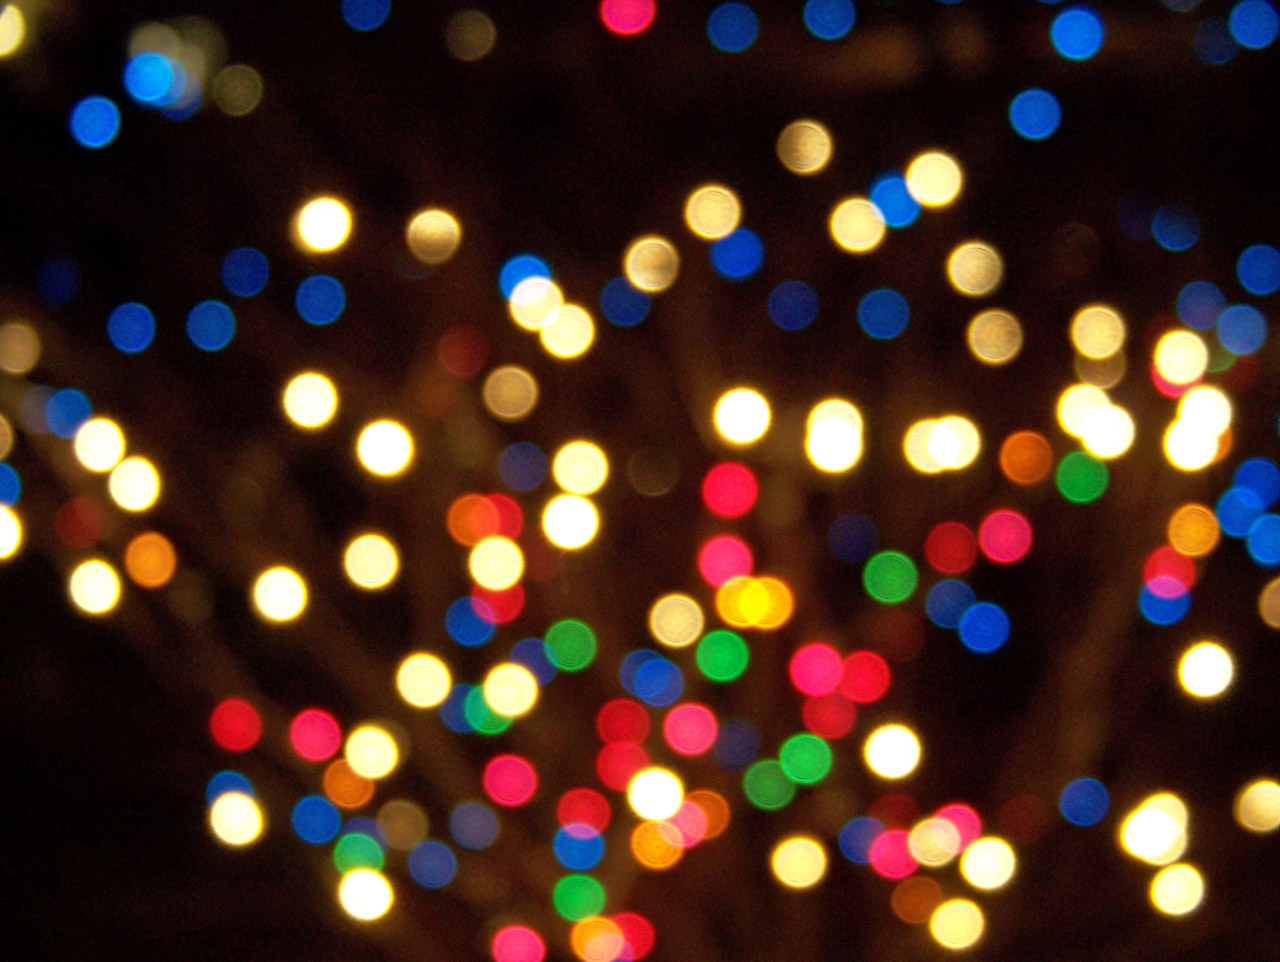 out-of-focus-christmas-lights image